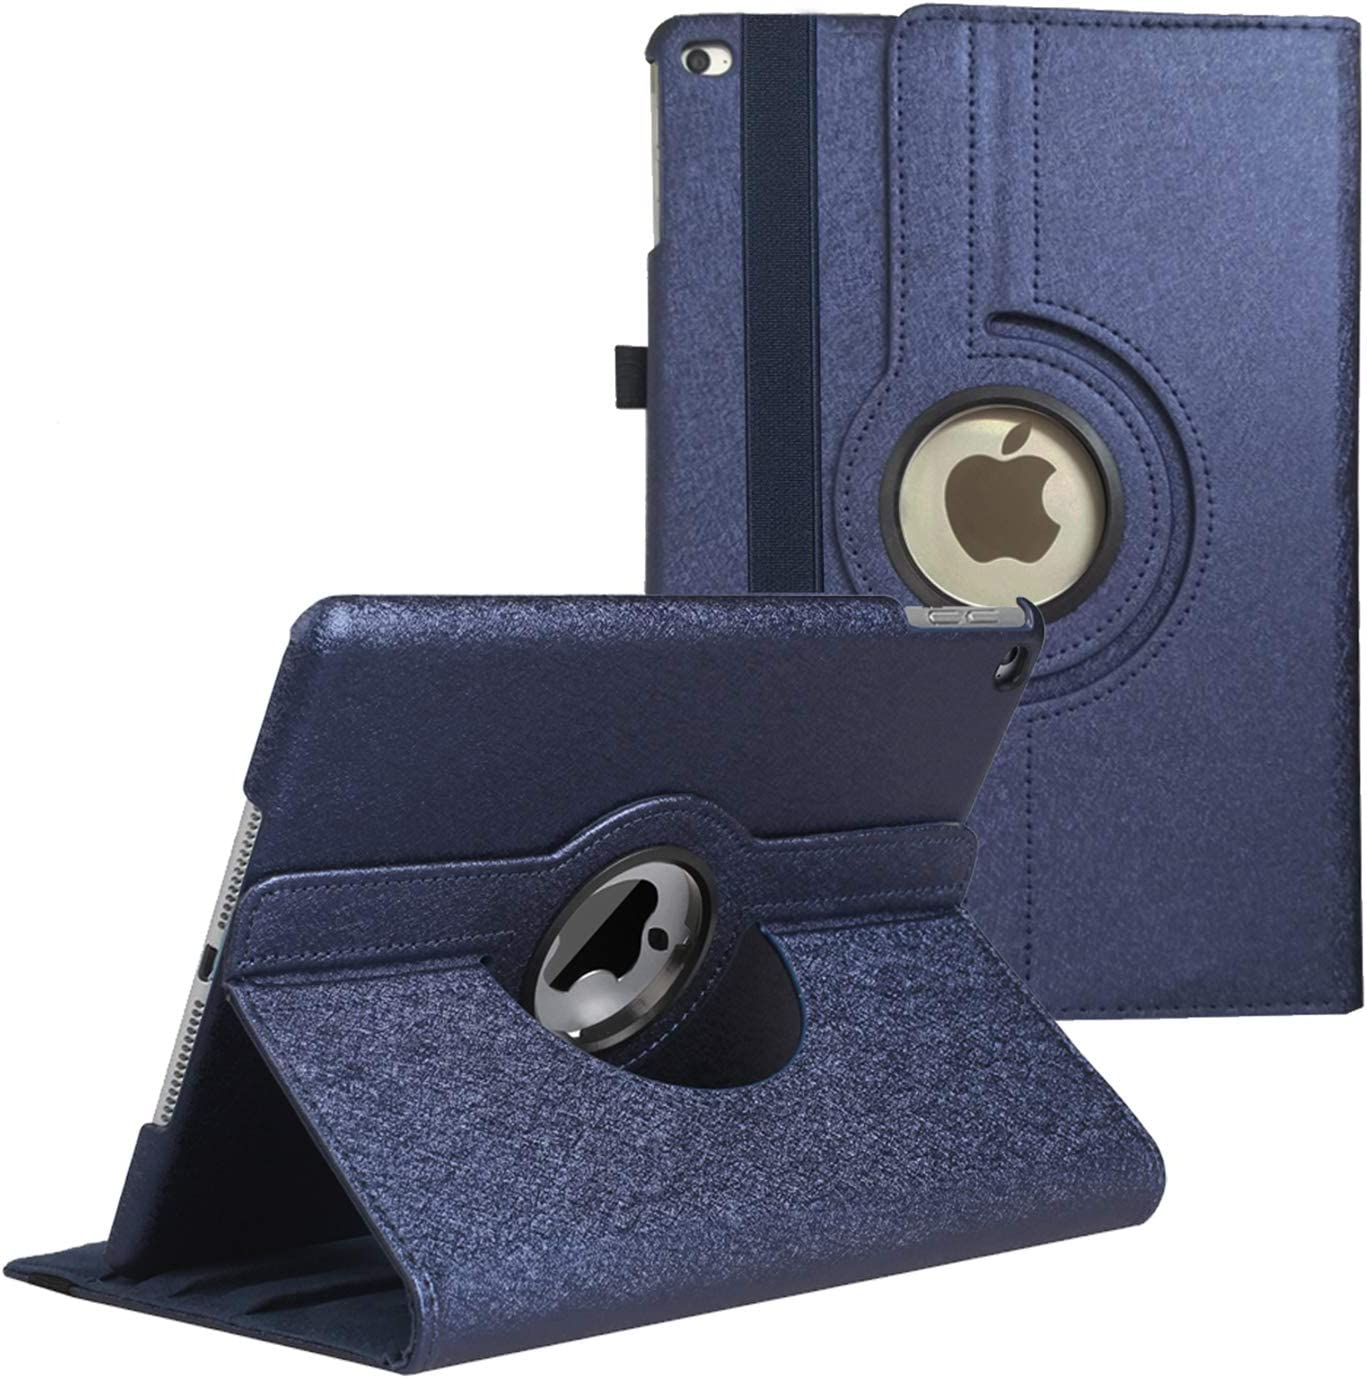 iPad 9.7 inch Case 2018 2017/ iPad Air Case - 360 Degree Rotating Stand Protective Cover Smart Case with Auto Sleep/Wake for Apple iPad 5th/6th Generation (Dark Blue)